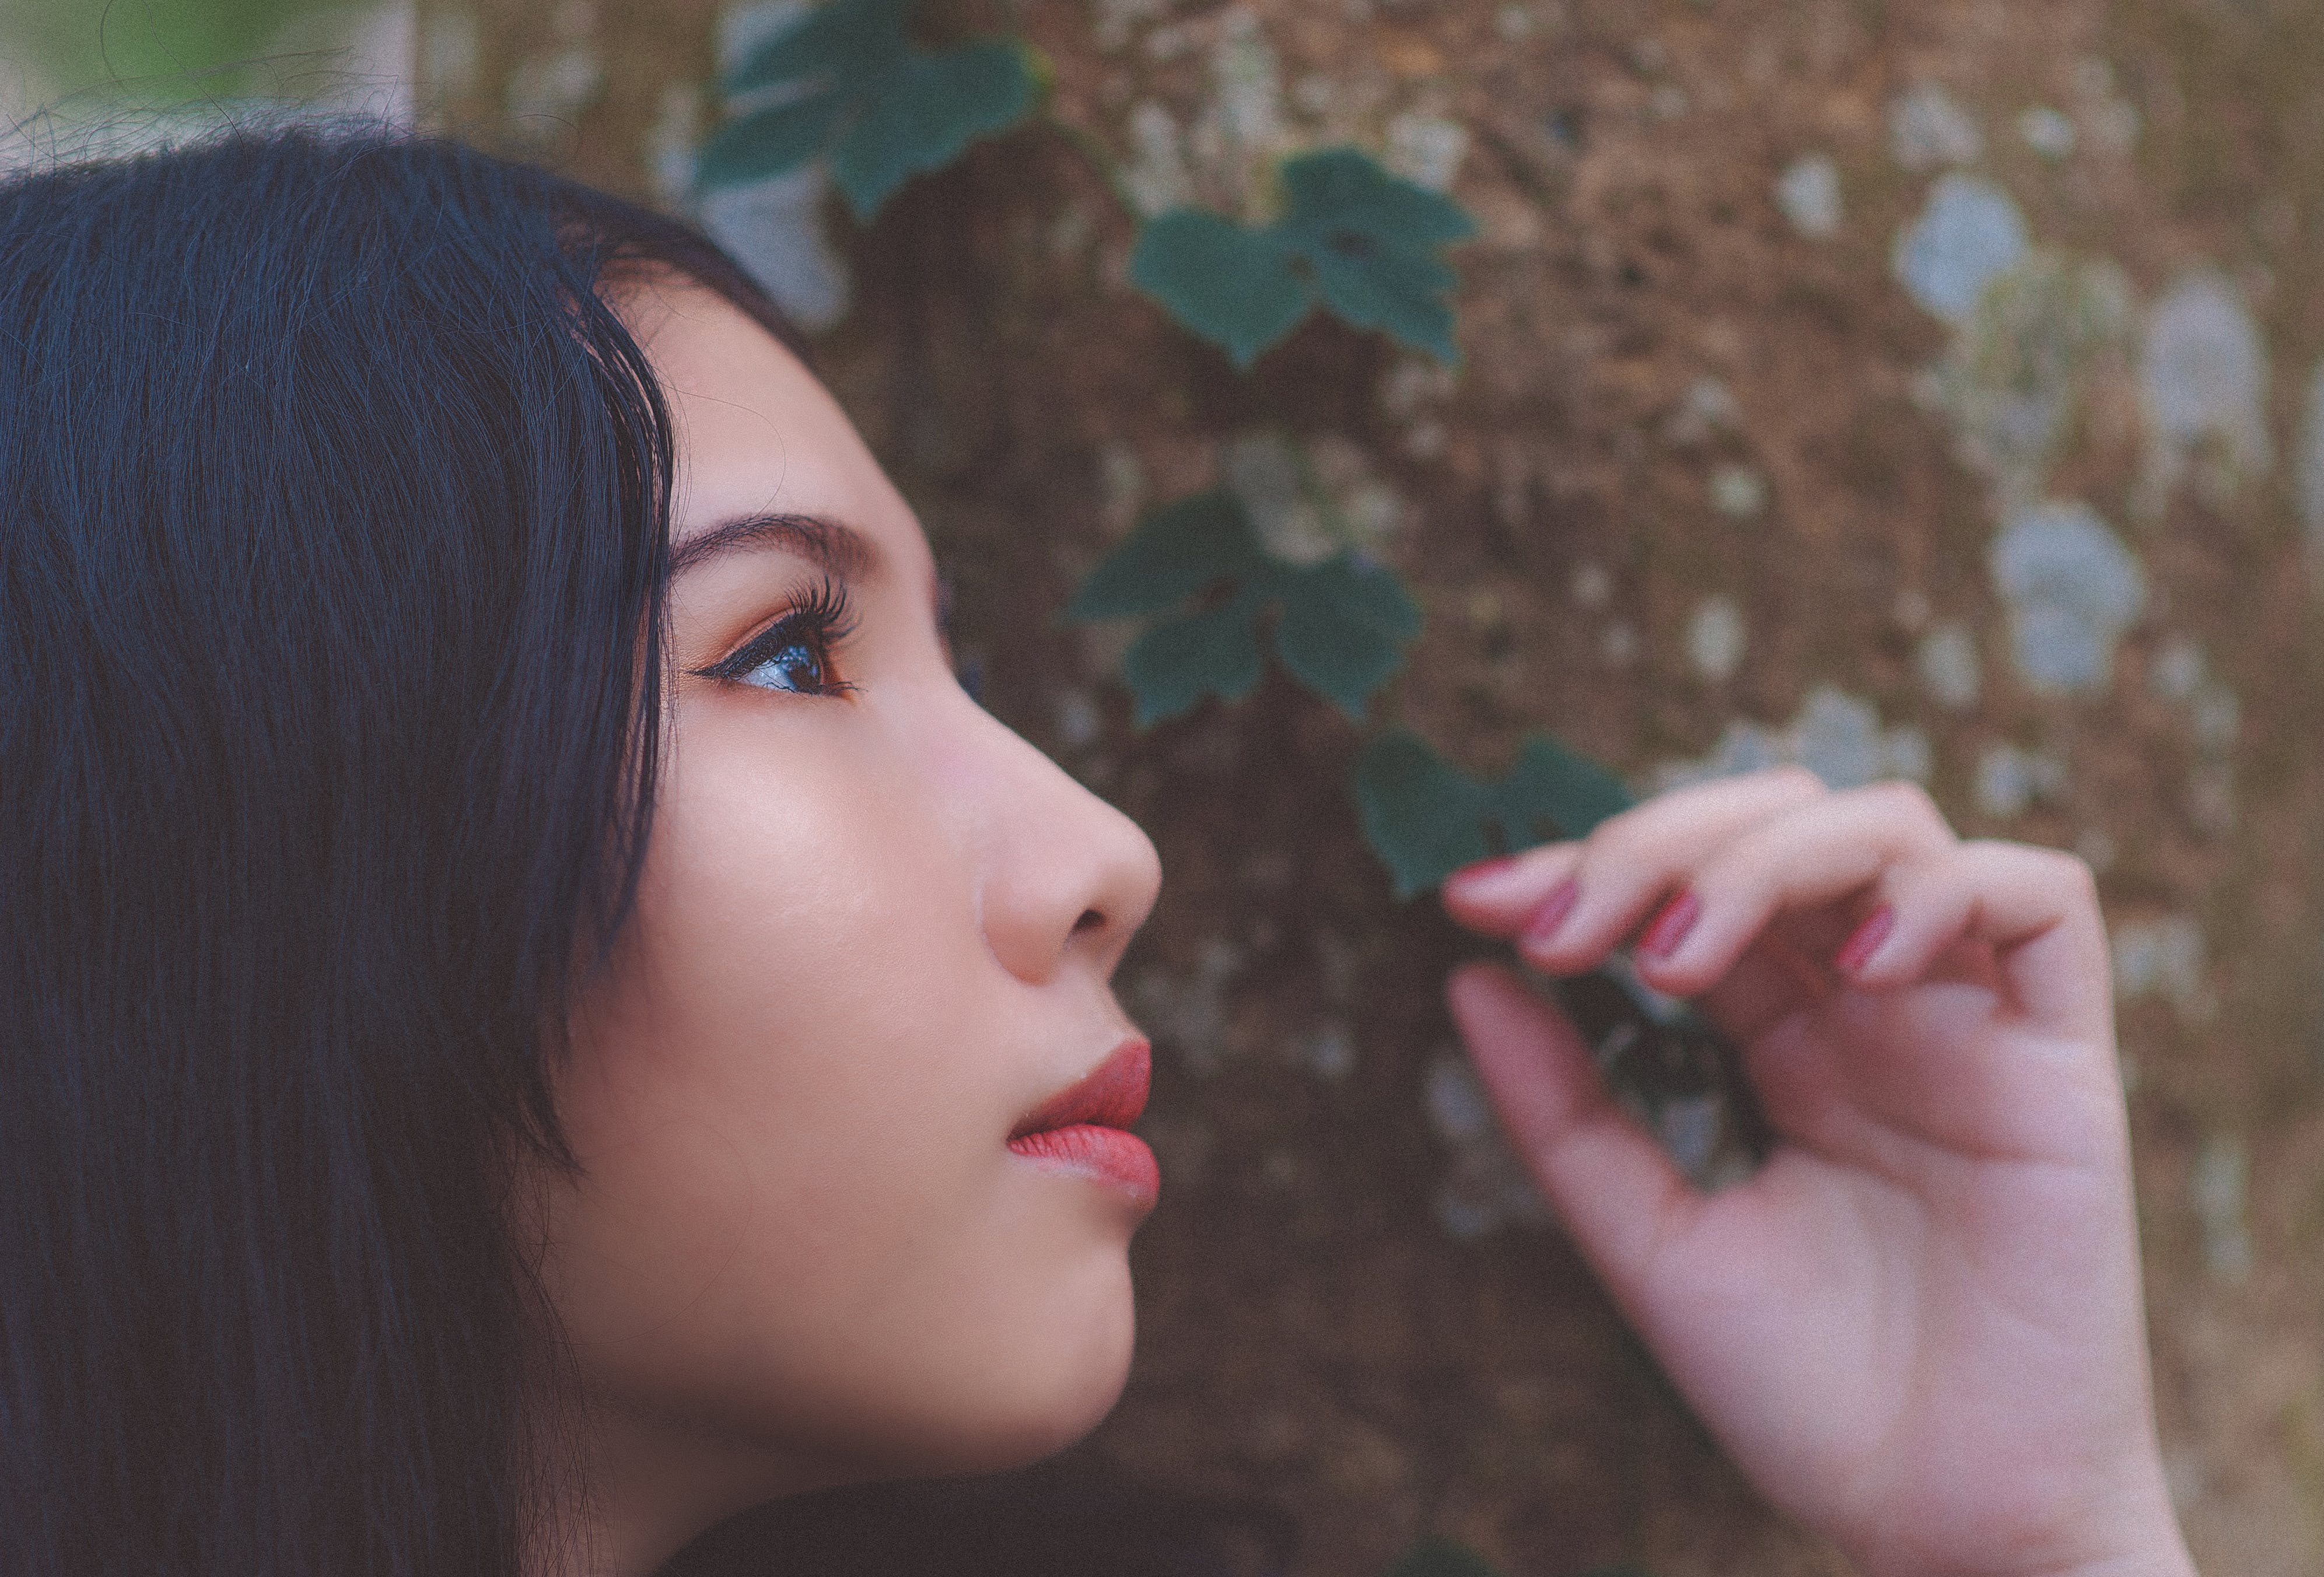 Close Up Photo of Woman Looking Up Near Tree Trunk